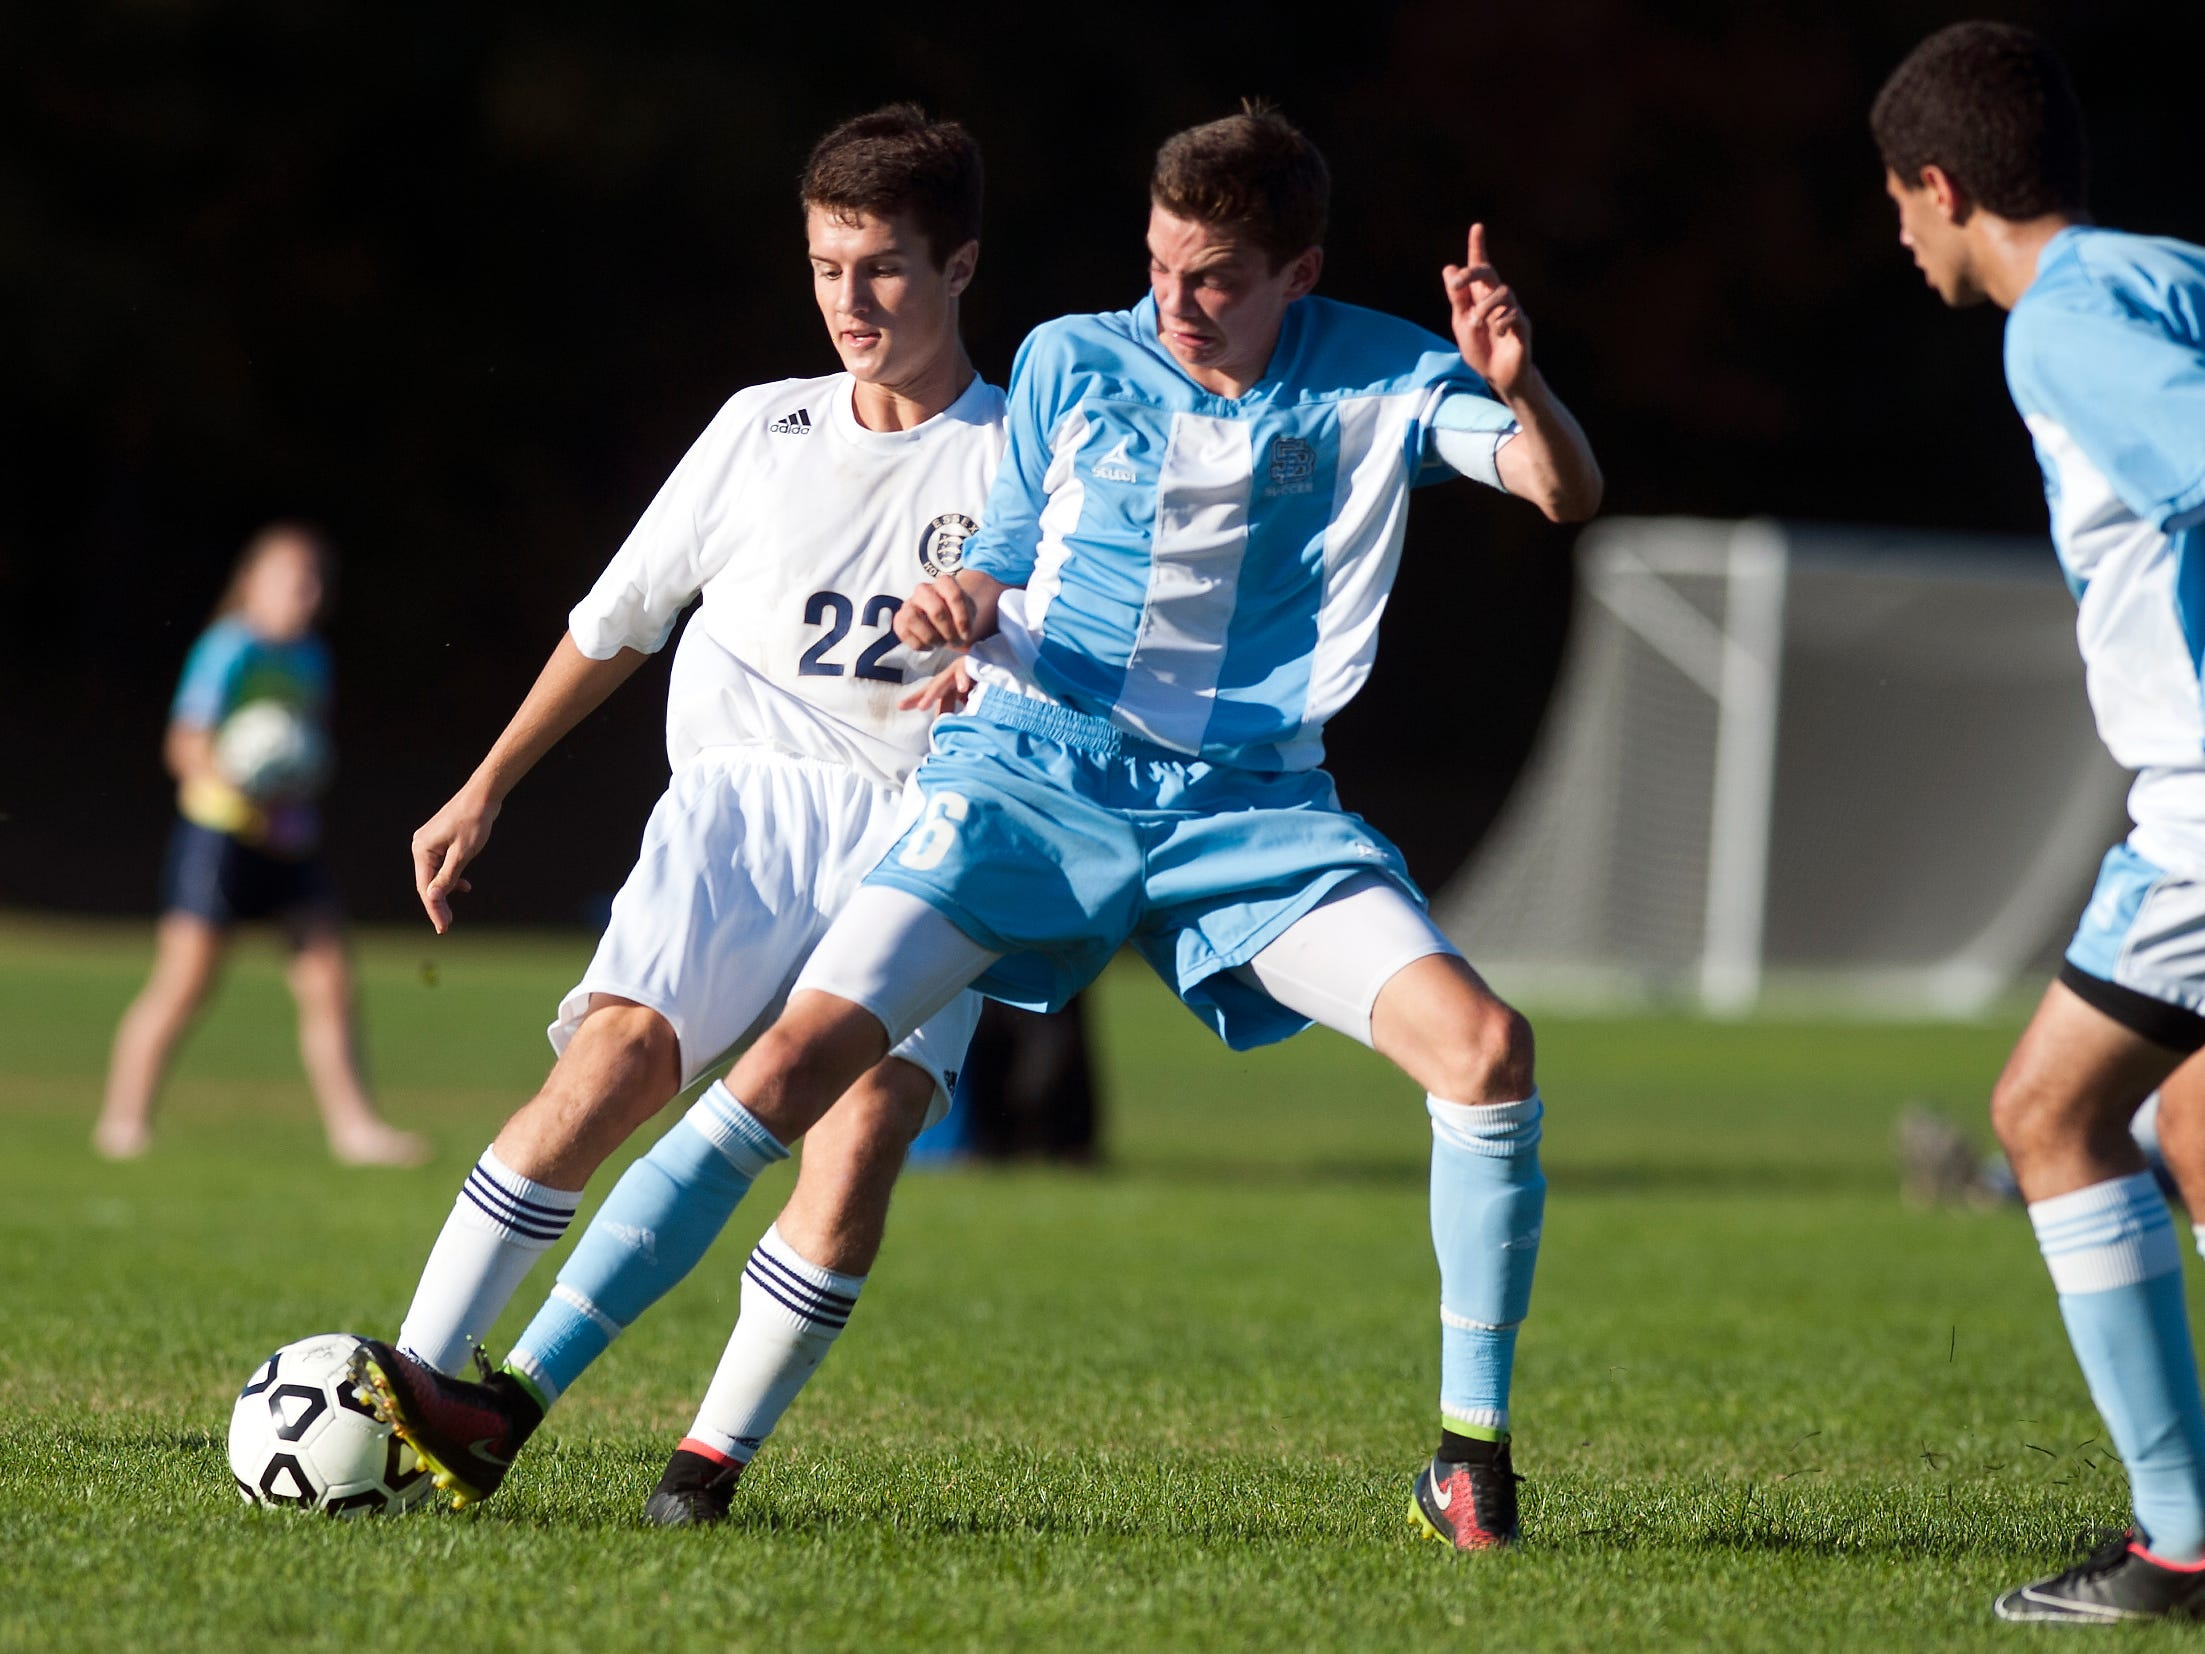 Essex's Nate Miles, left, and South Burlington's Alex Pasanen, right, will lead their teams in today's Division I high school boys soccer championship game at Buck Hard Field. Following the girls game at 10 a.m., game time is 1 p.m.